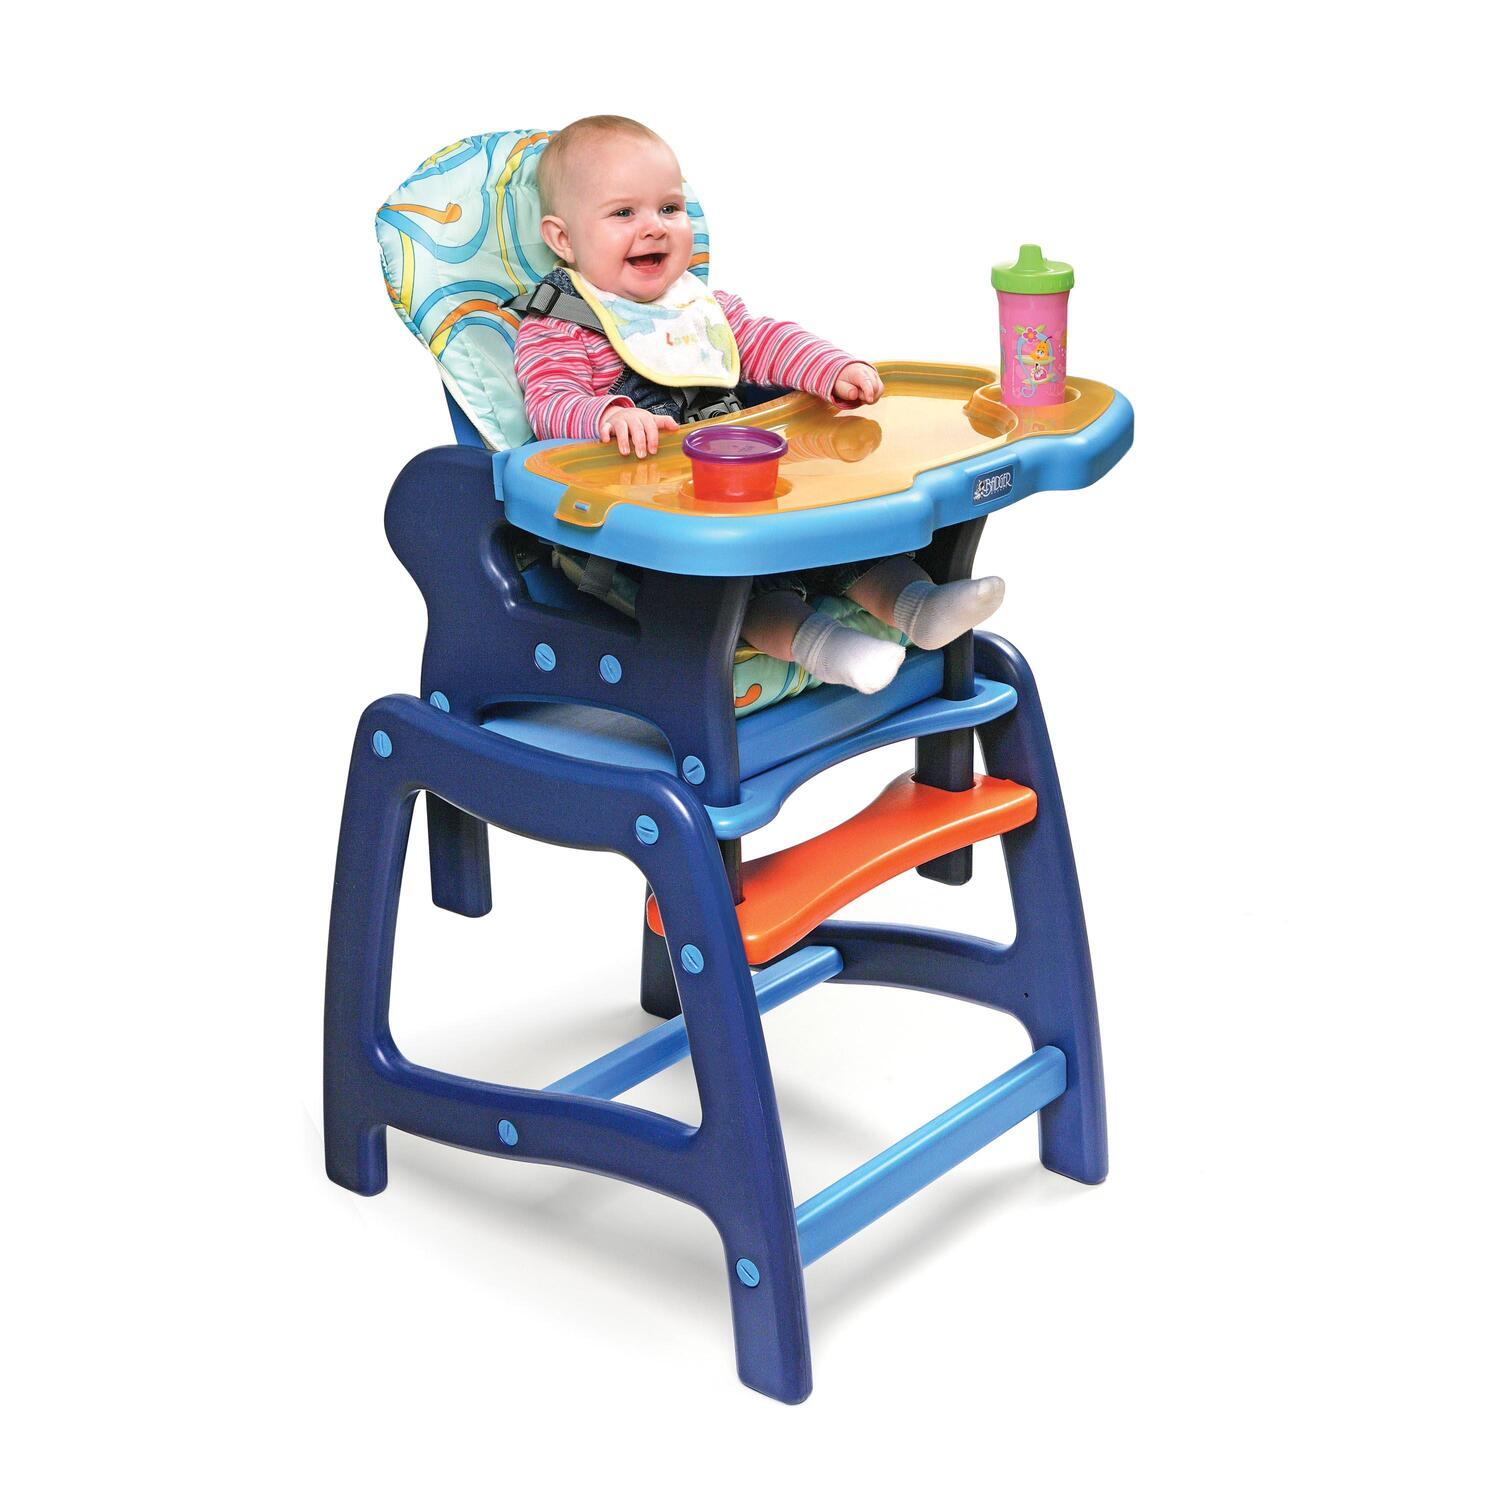 Envee Baby High Chair with Playtable Conversion